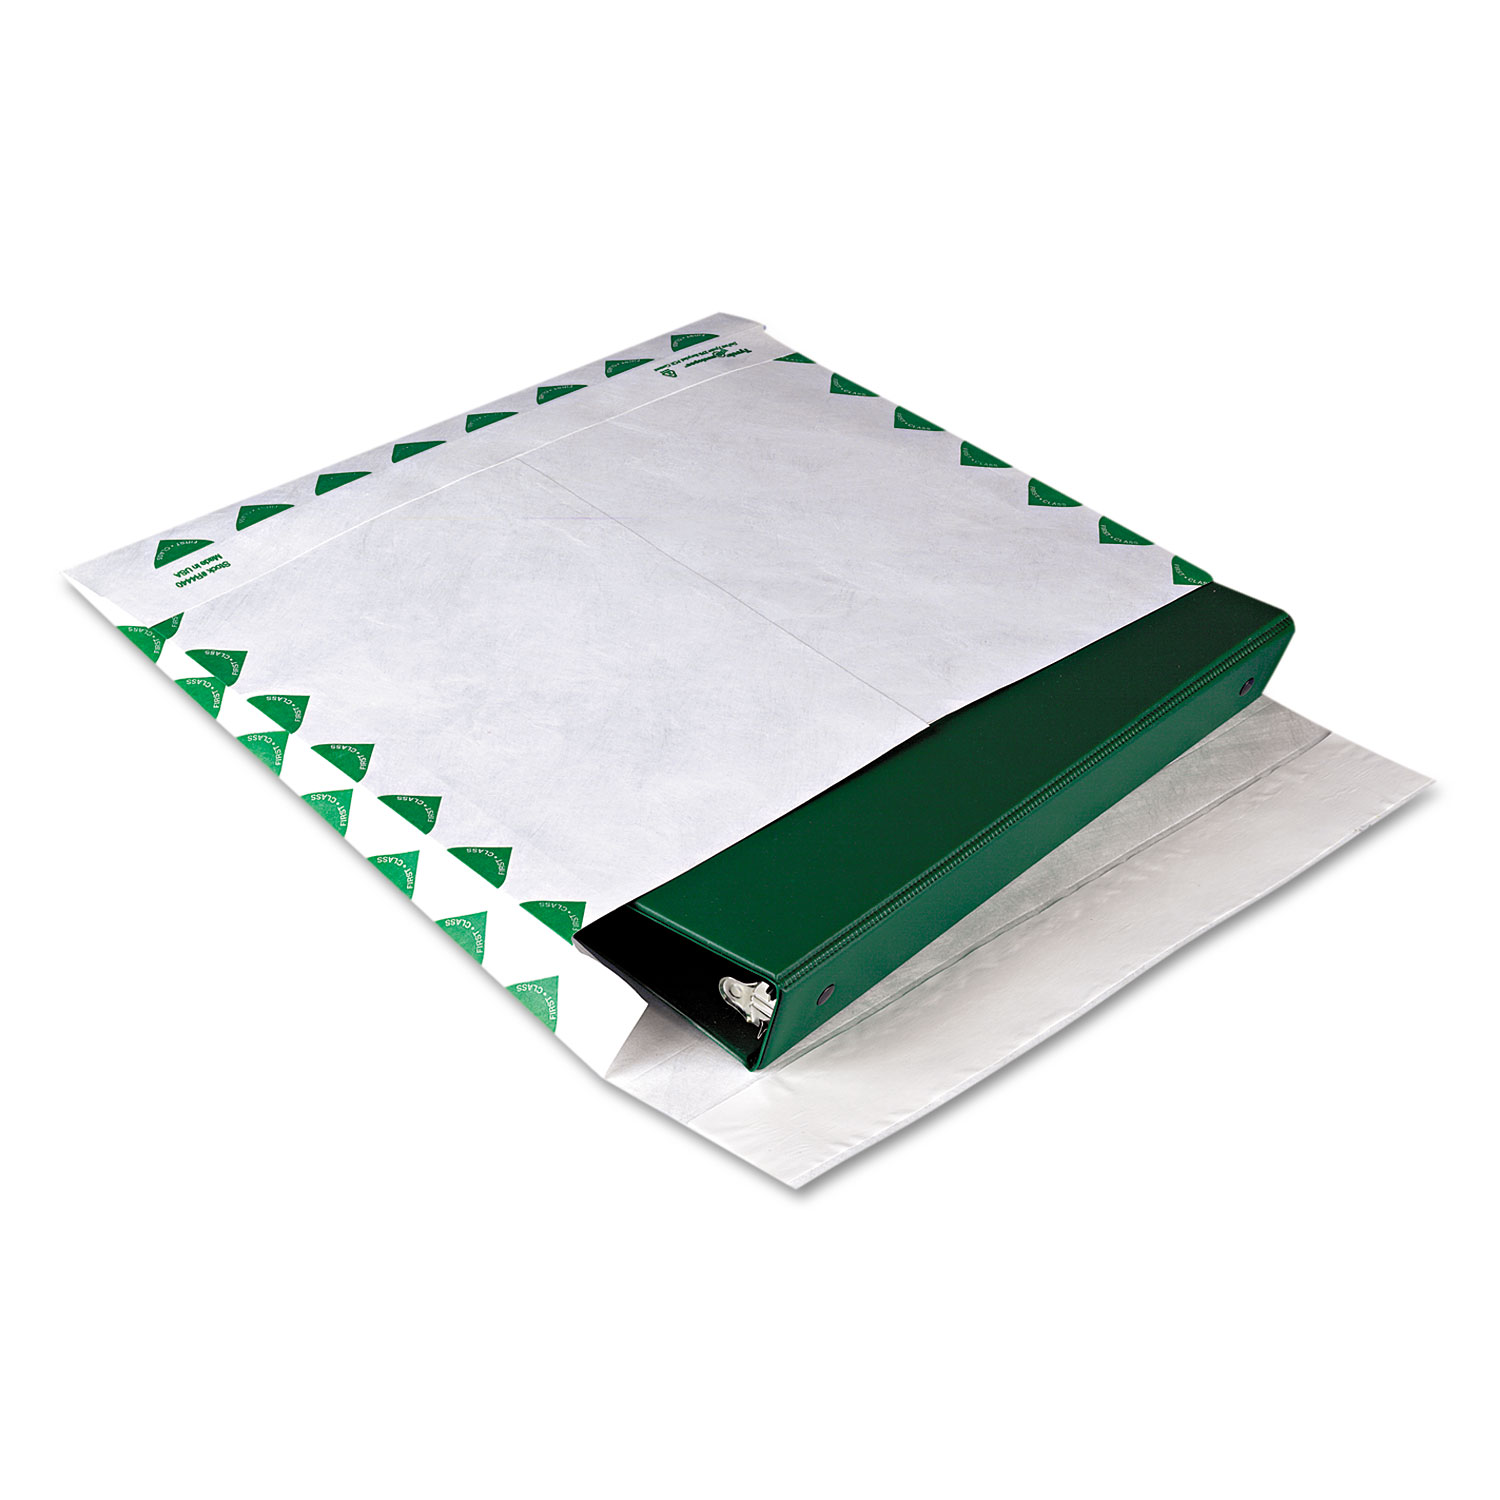 Open Side Expansion Mailers, DuPont Tyvek, #13 1/2, Cheese Blade Flap, Redi-Strip Closure, 10 x 13, White, 100/Carton